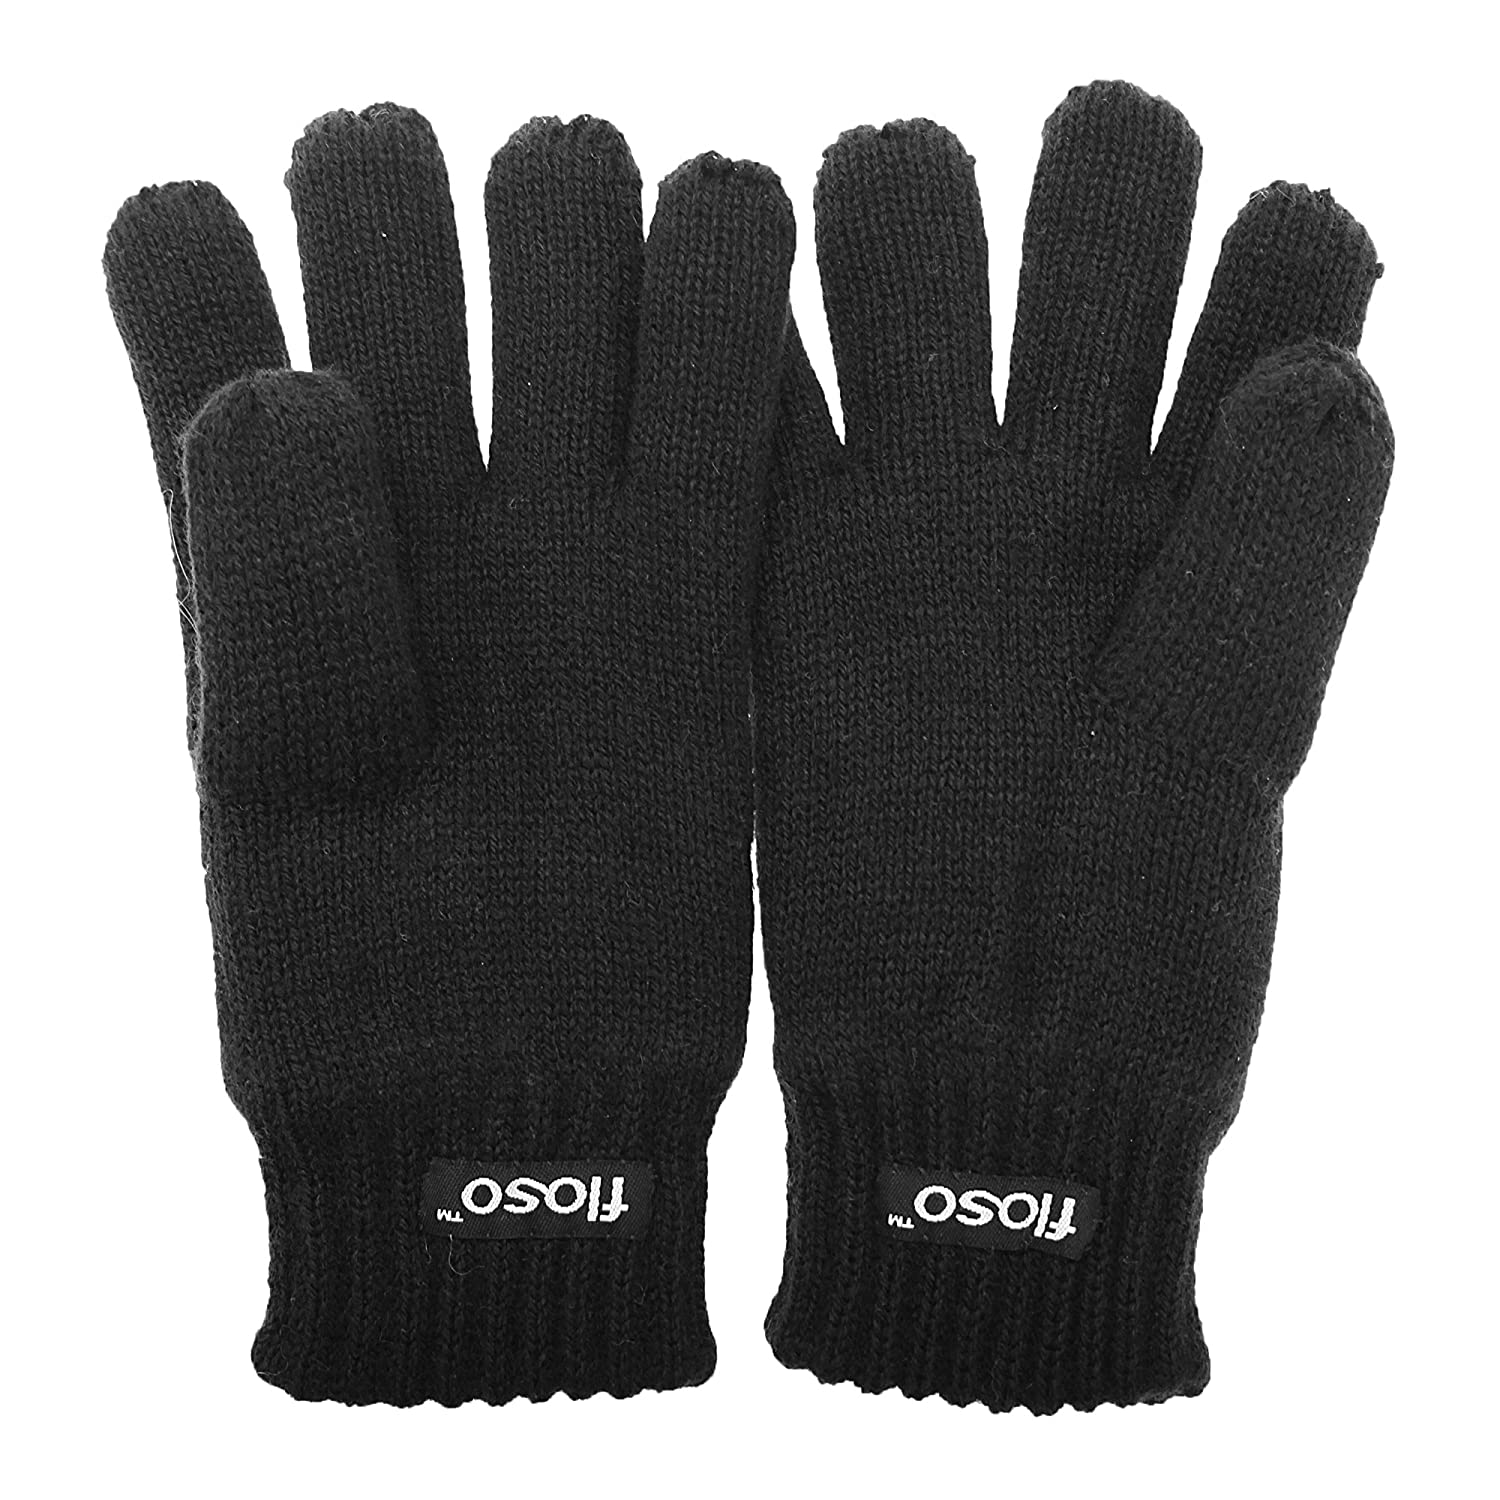 FLOSO Childrens Unisex Knitted Thermal Thinsulate Gloves (3M 40g) (6-7 Years) (Black) UTGL236_1